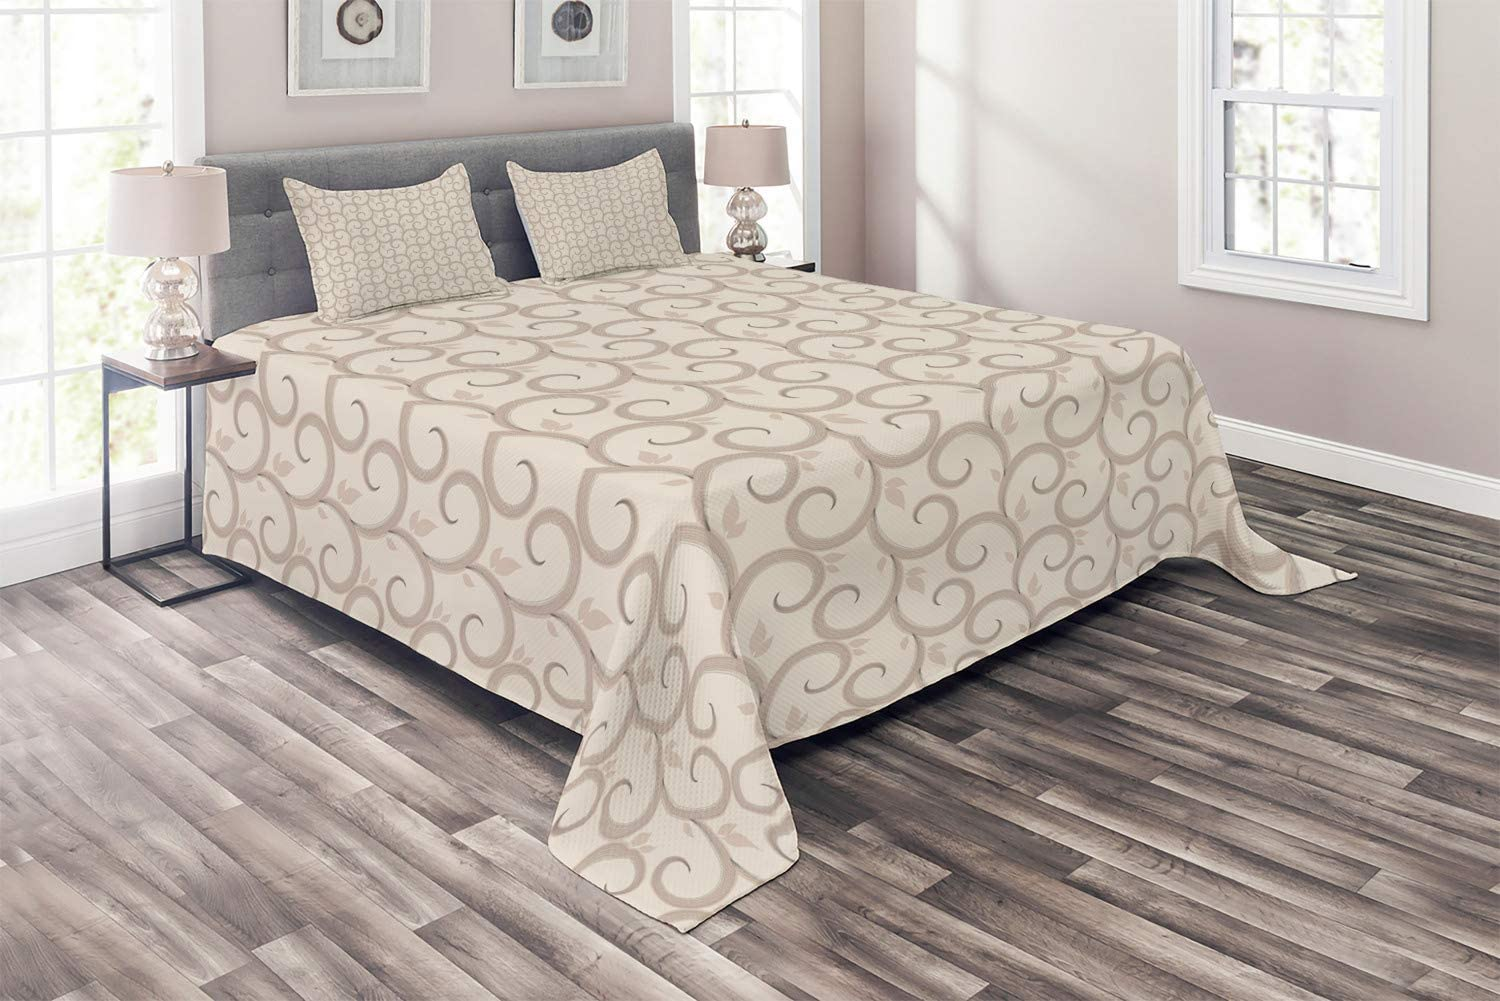 Ambesonne Beige Coverlet Overseas parallel import regular item Swirling Regular Courier shipping free Motifs Curved Leaves